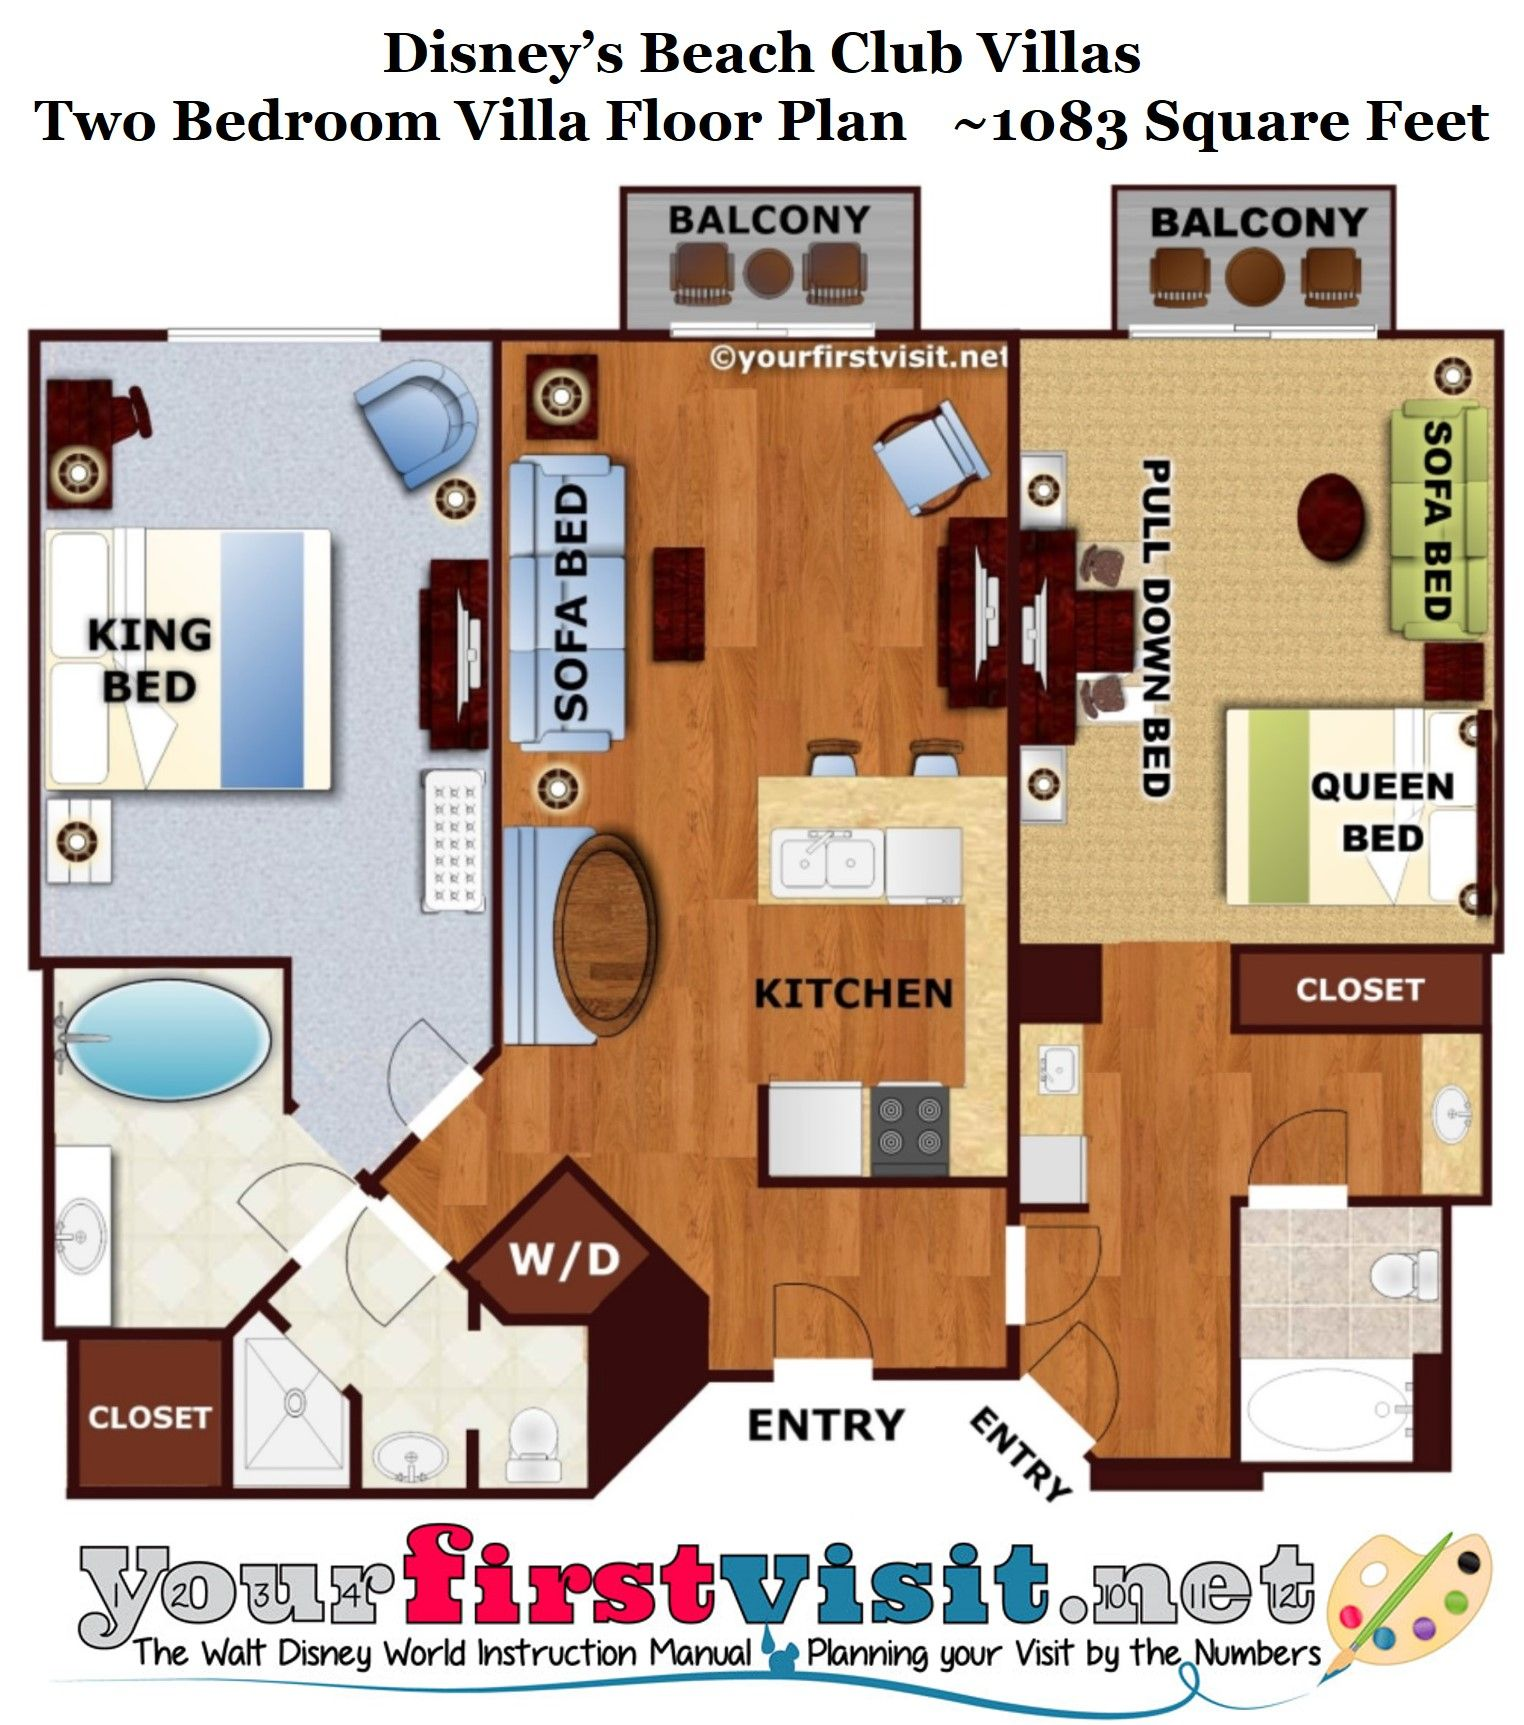 Disneys Beach Club Villas Renovated Two Bedroom Villa Floor Plan From Yourfirstvisit Net